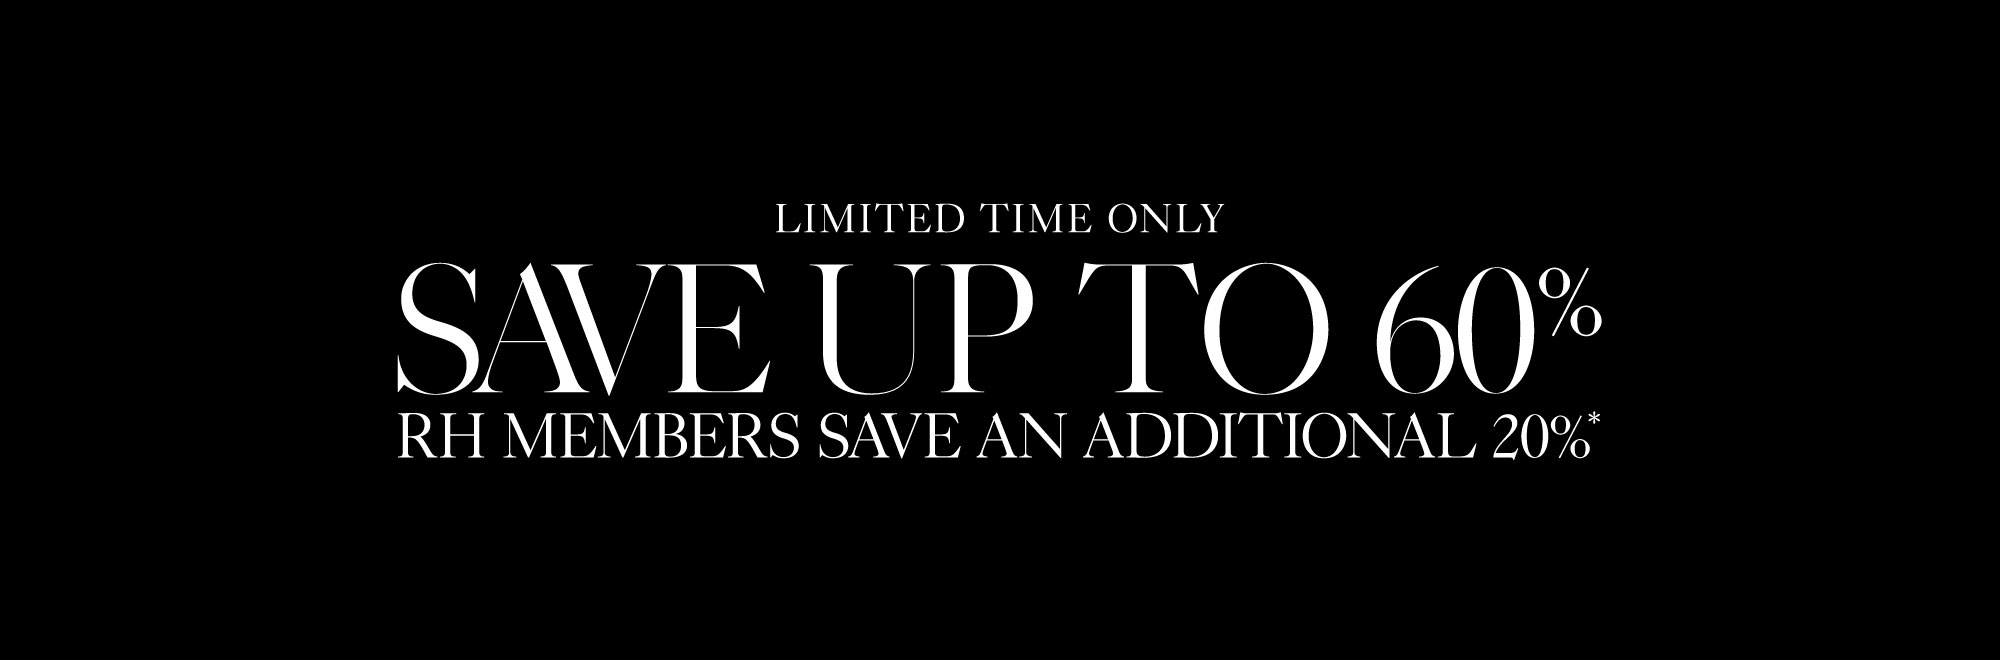 Save up to 60% on hundreds of clearance items RH Members Save An Additional 20% in stock and ready to ship.